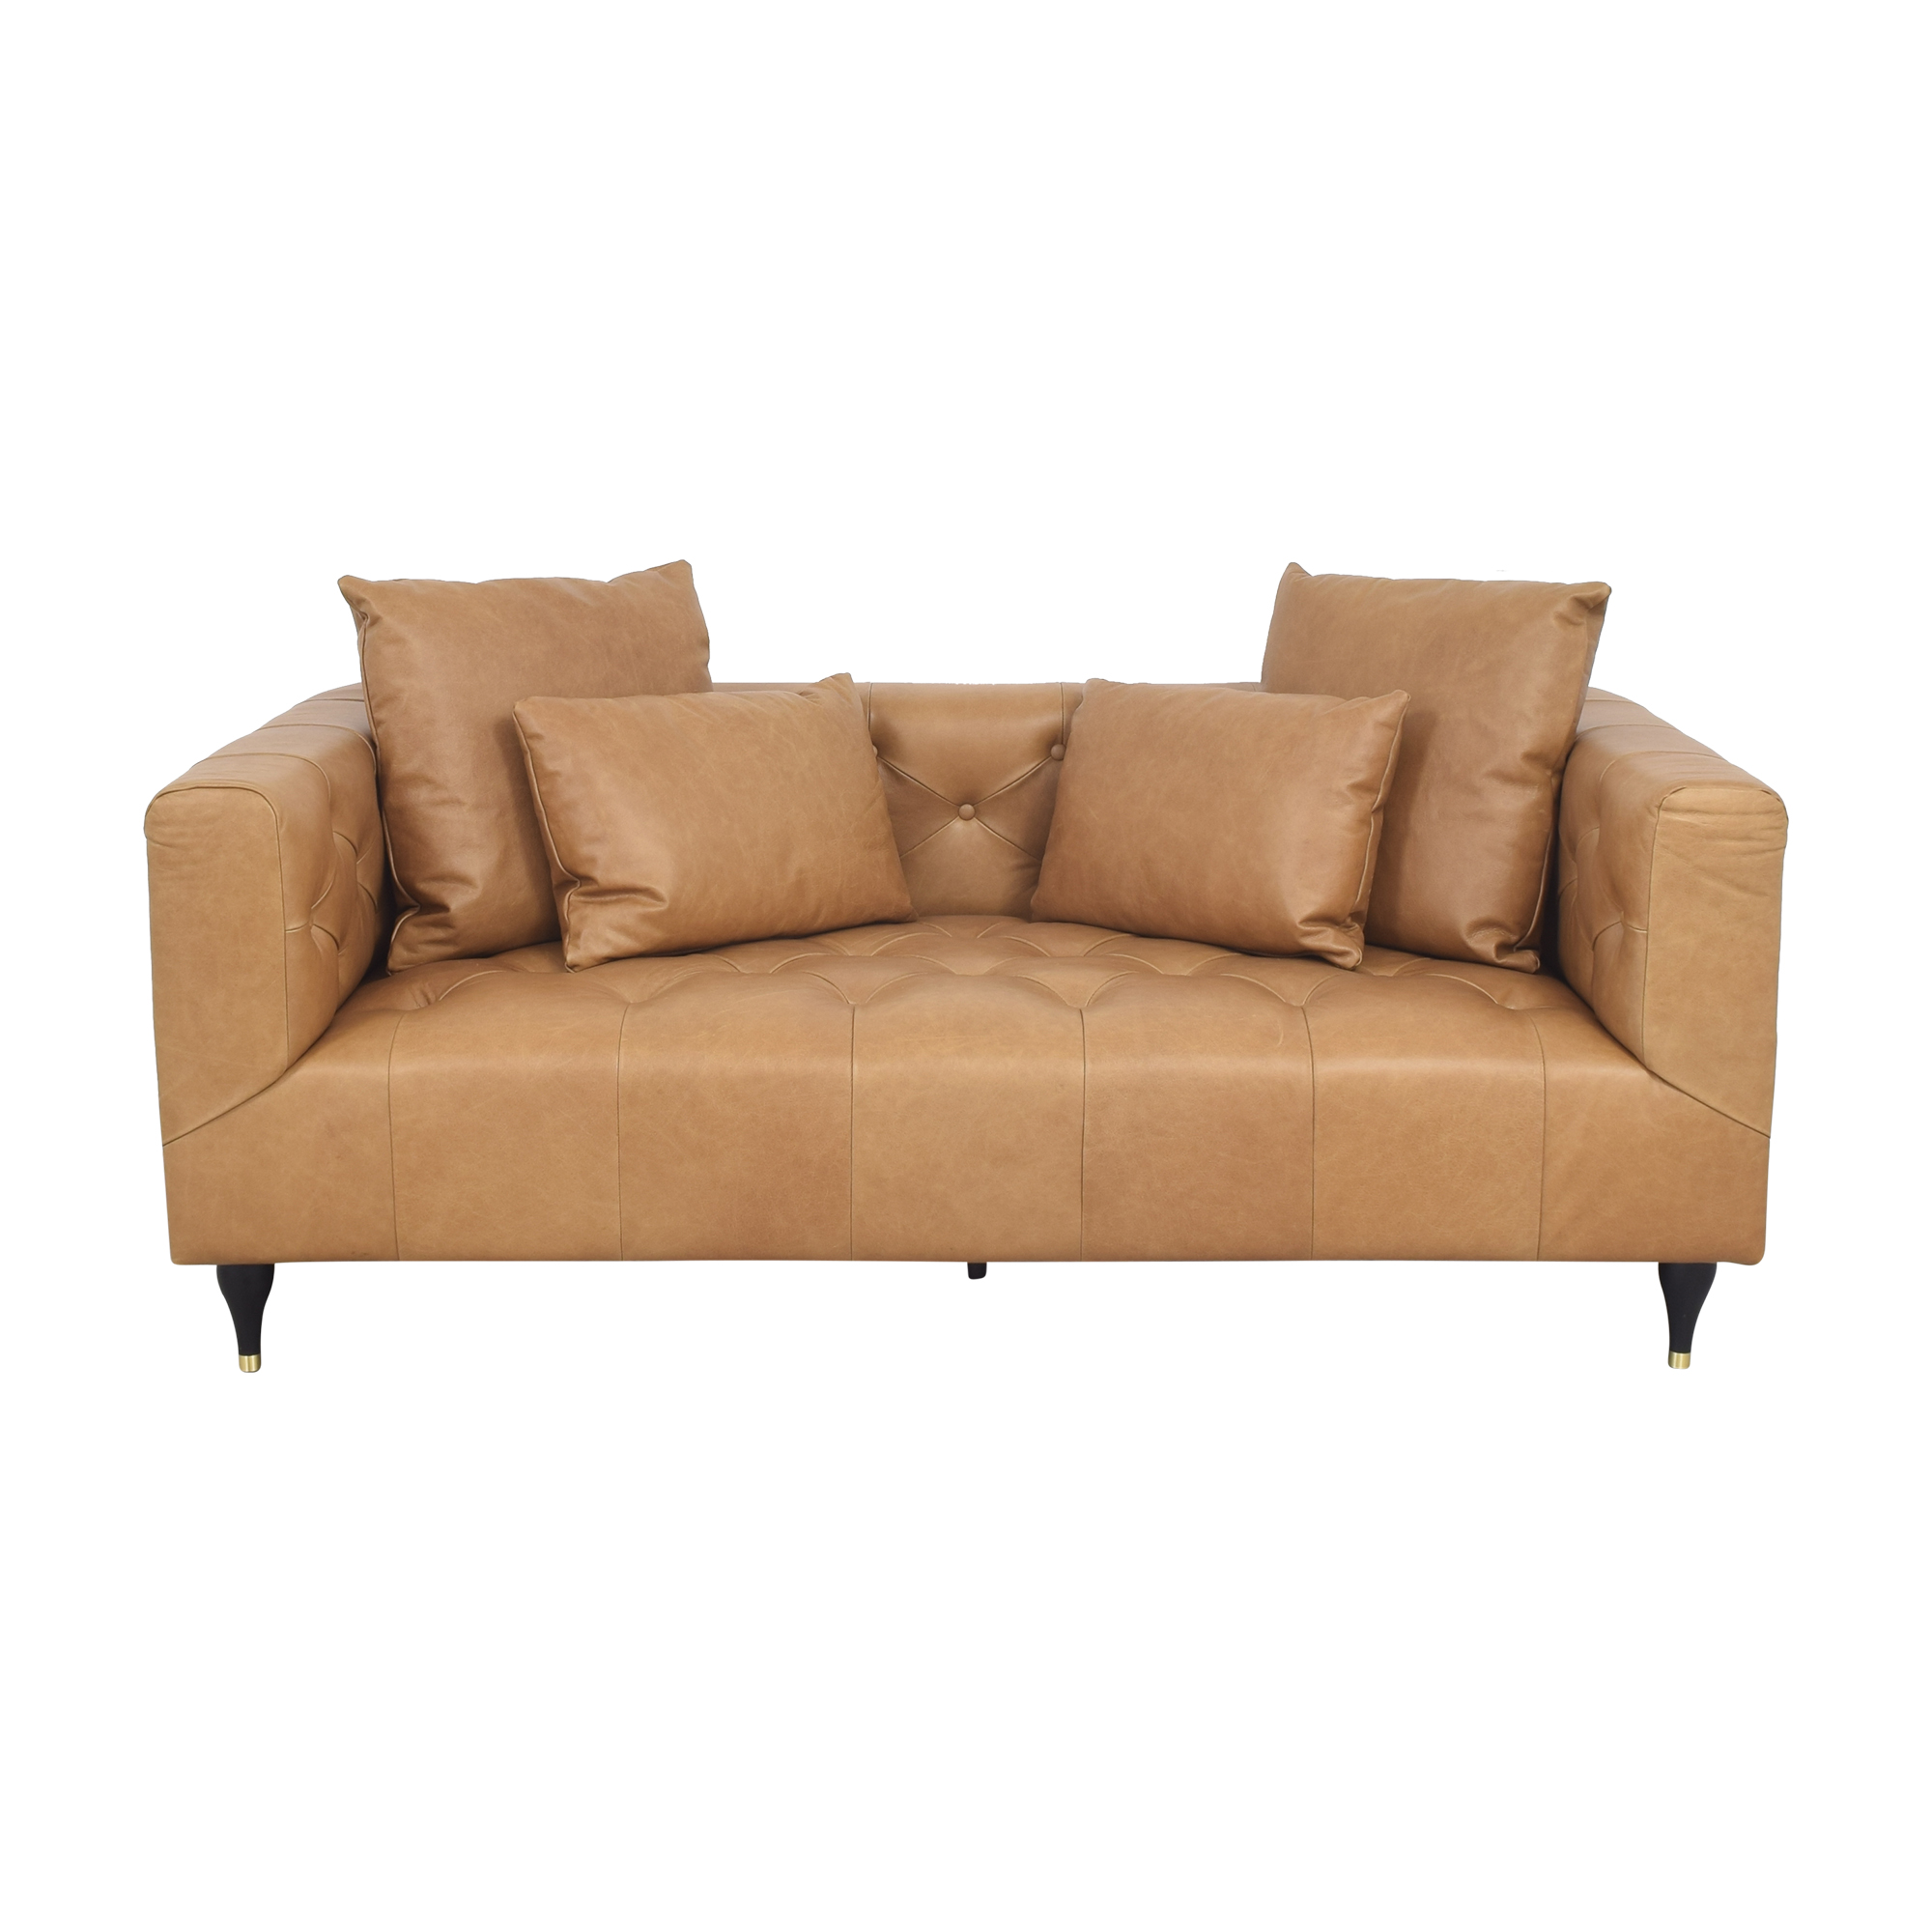 Interior Define Interior Define Ms. Chesterfield Tufted Sofa nyc